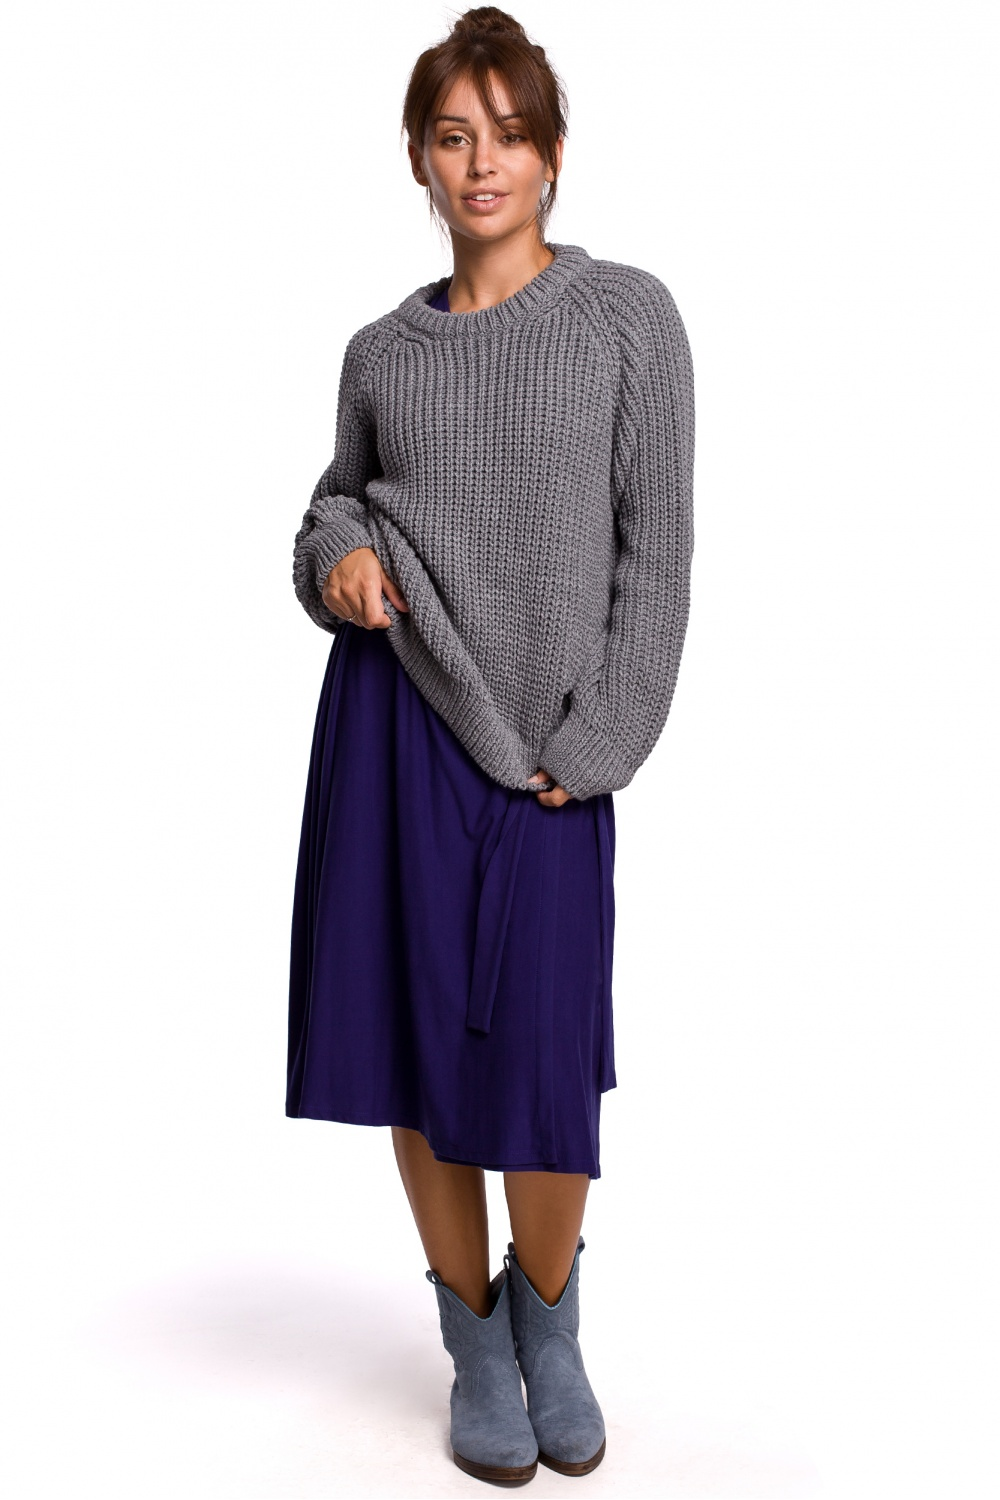 Pulover model 148282 BE Knit